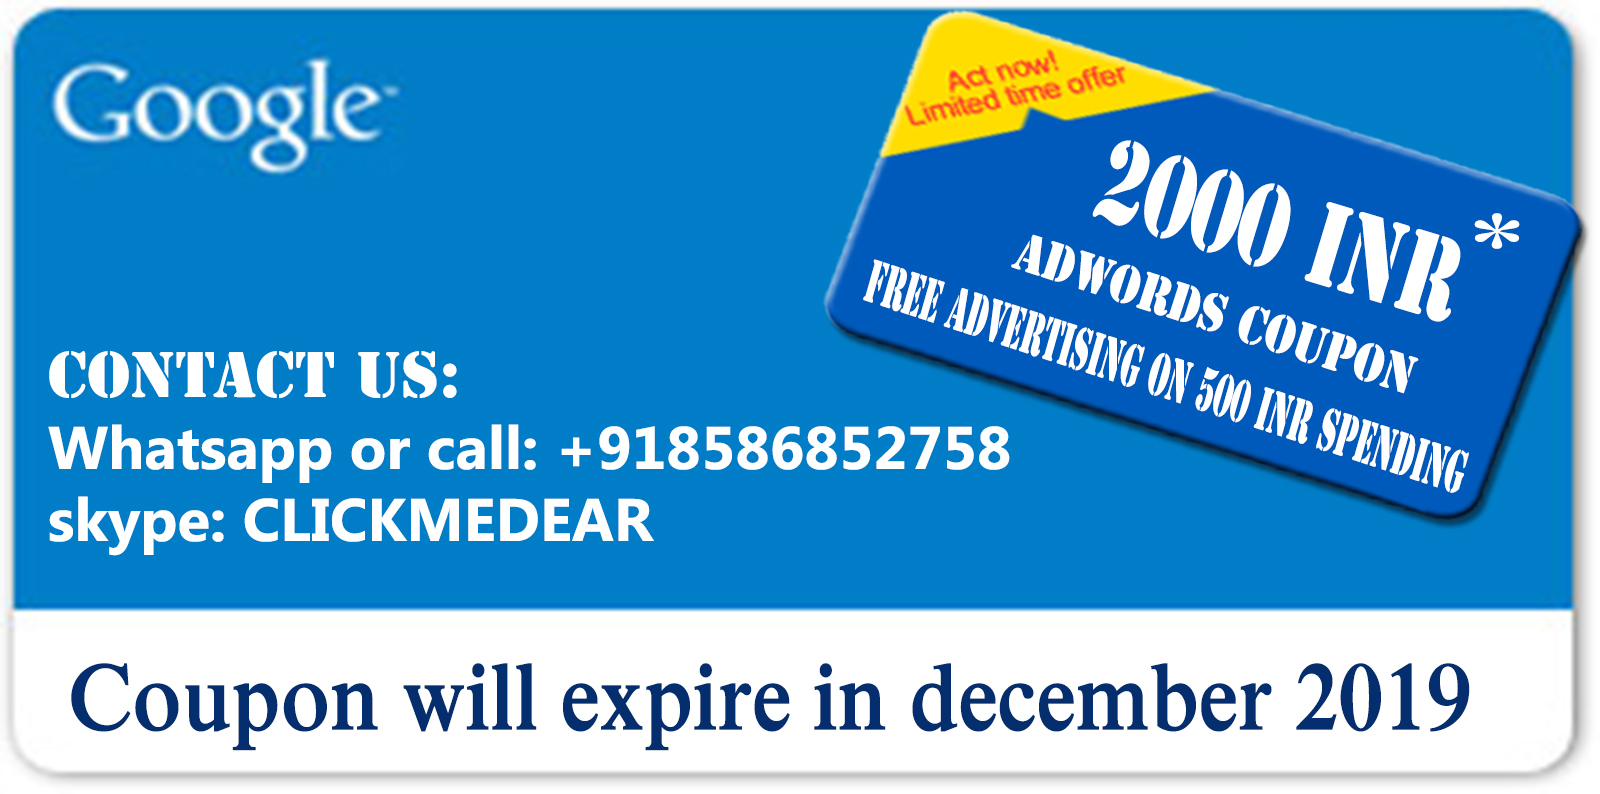 Adwords coupon 2000 for india | spend 500 get 2000 inr | adwords